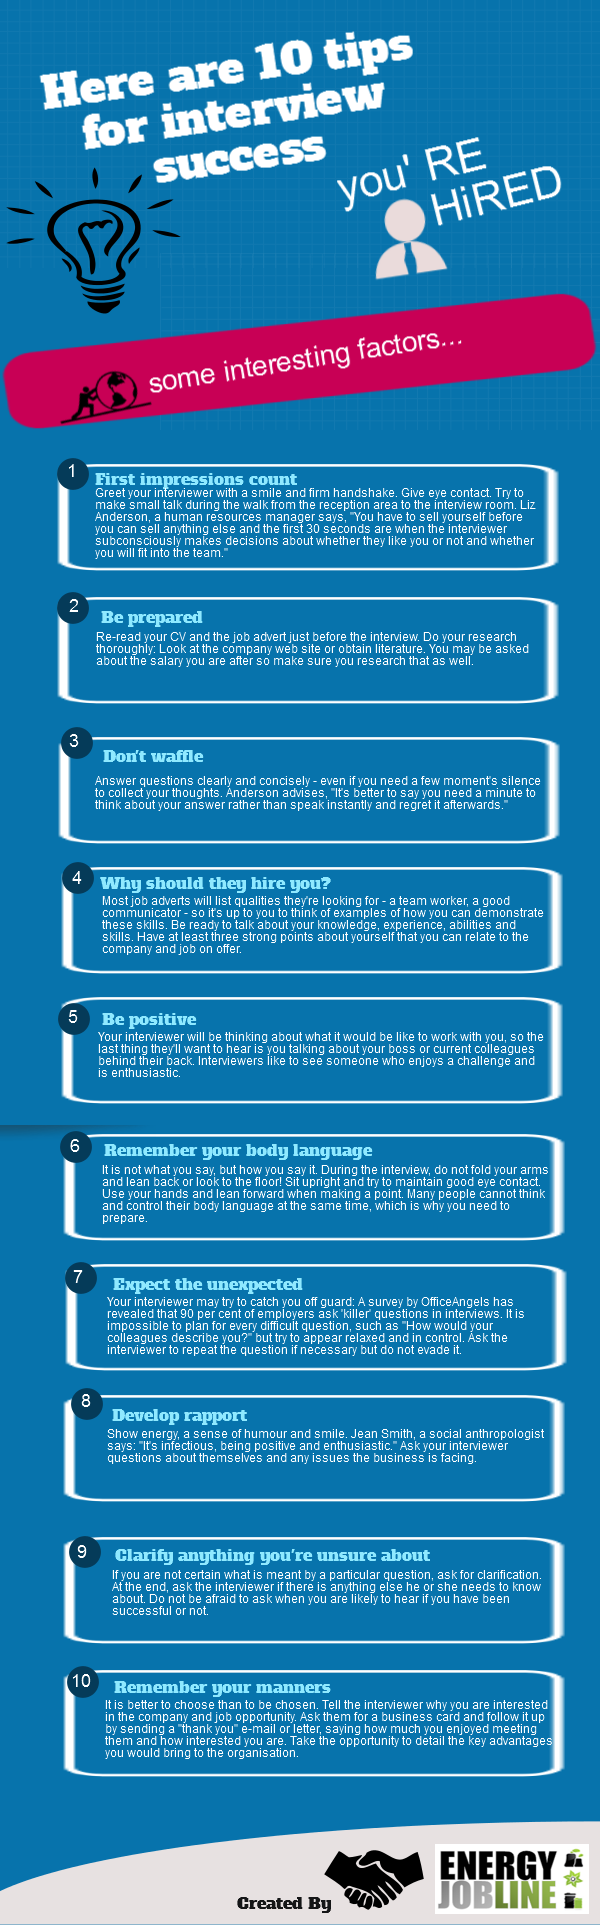 Pin by Parvathy Nayer on Skills Job interview questions